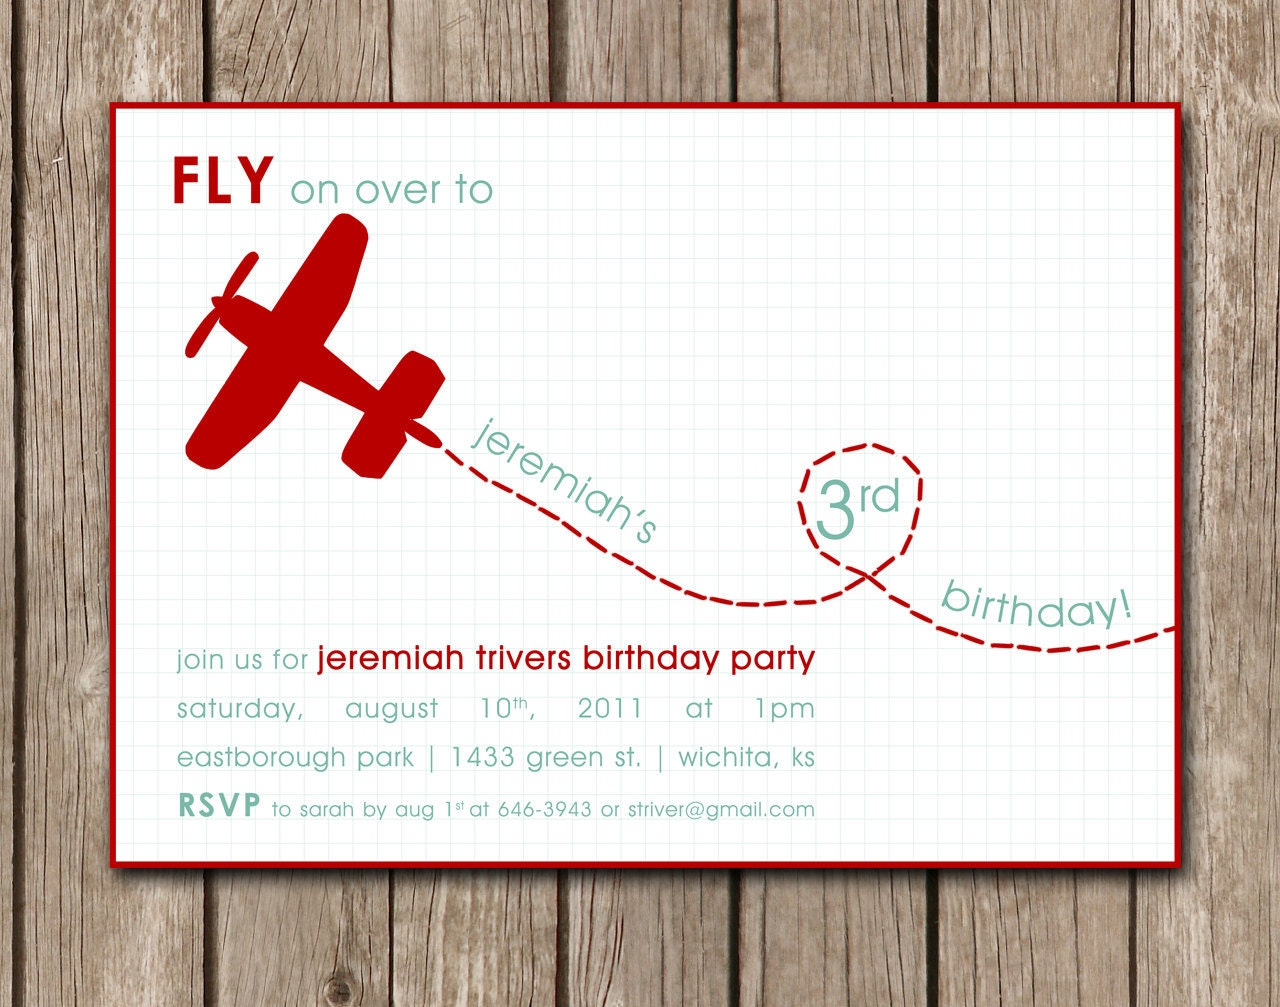 Airplane Invitations was great invitations design